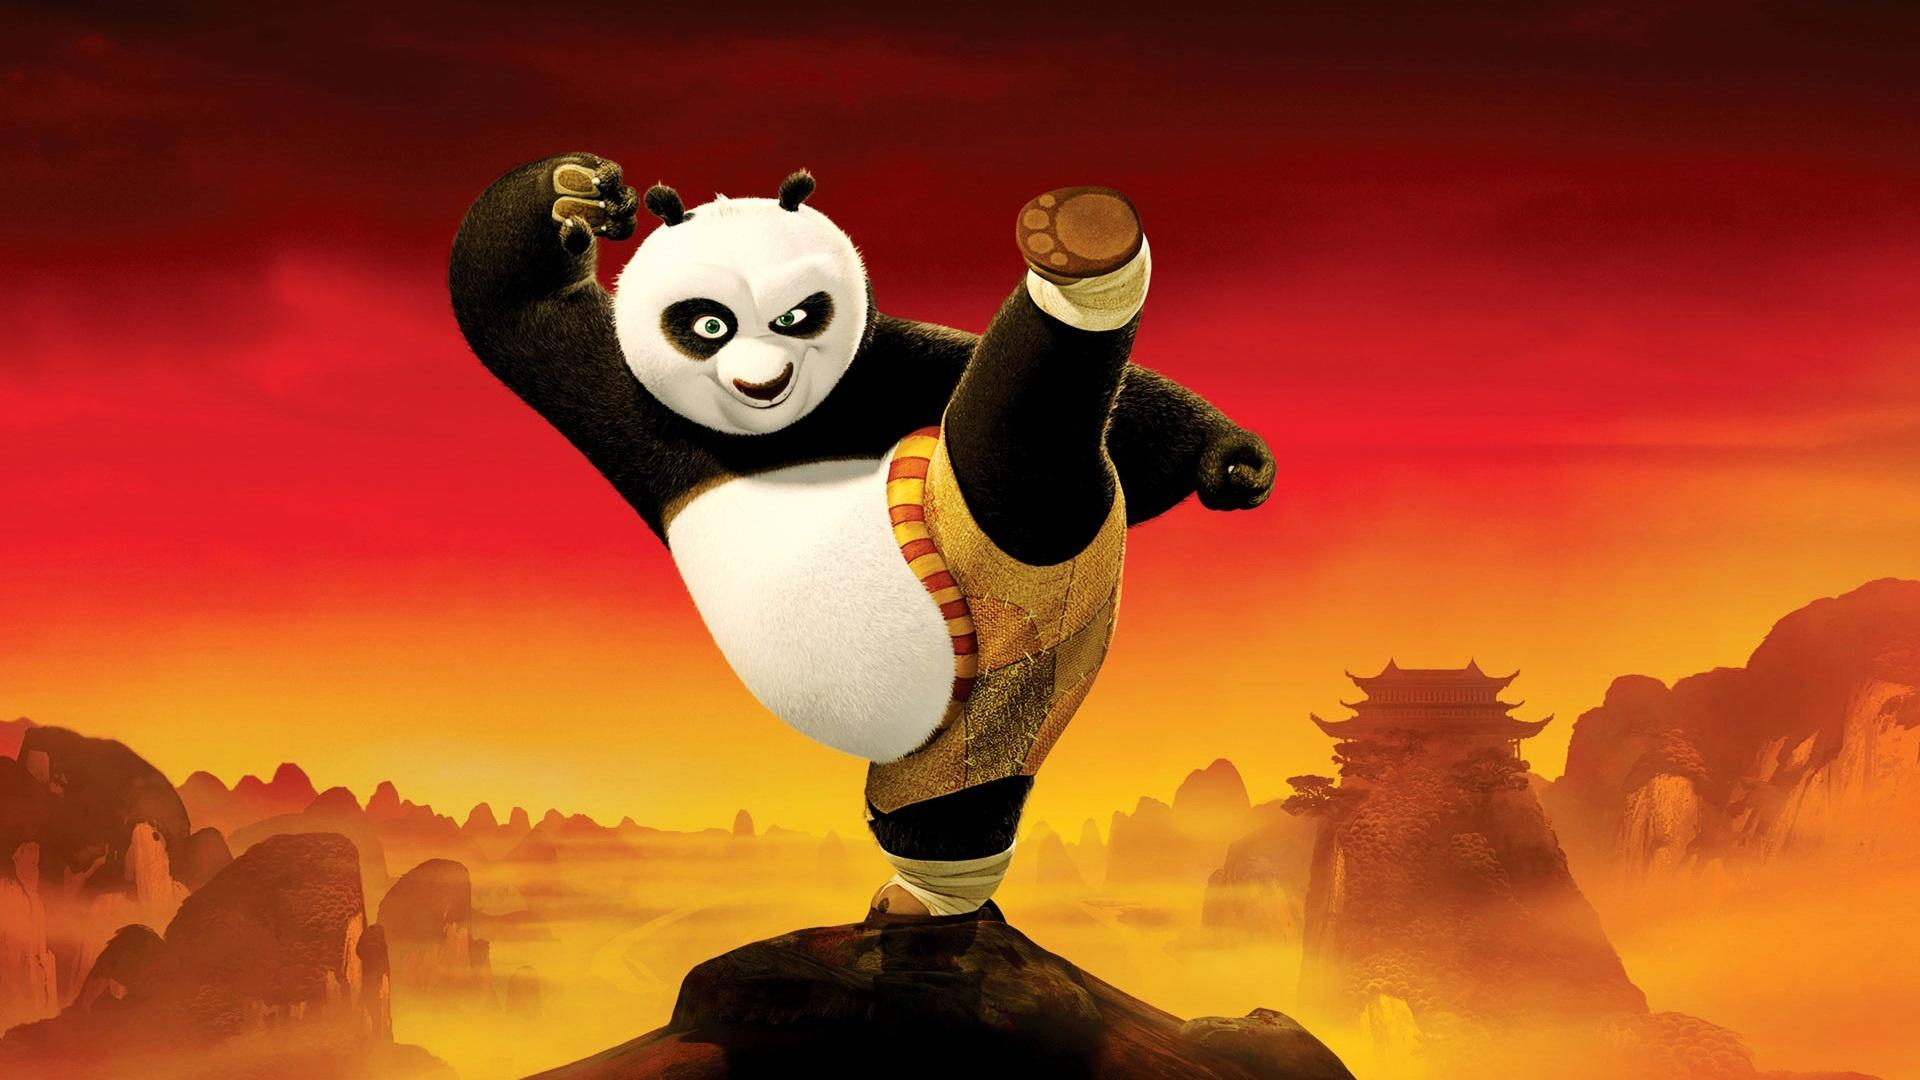 kunfu panda Kung fu panda 2 is a 2011 3d american computer-animated comedy-drama martial arts film, directed by jennifer yuh nelson, produced by dreamworks animation, and distributed by paramount pictures.